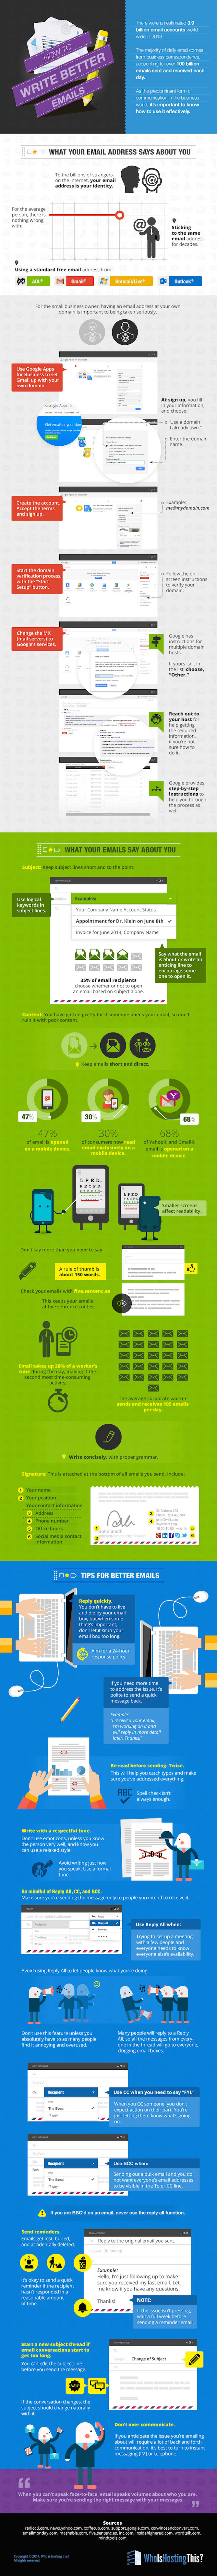 write-better-emails-infographic